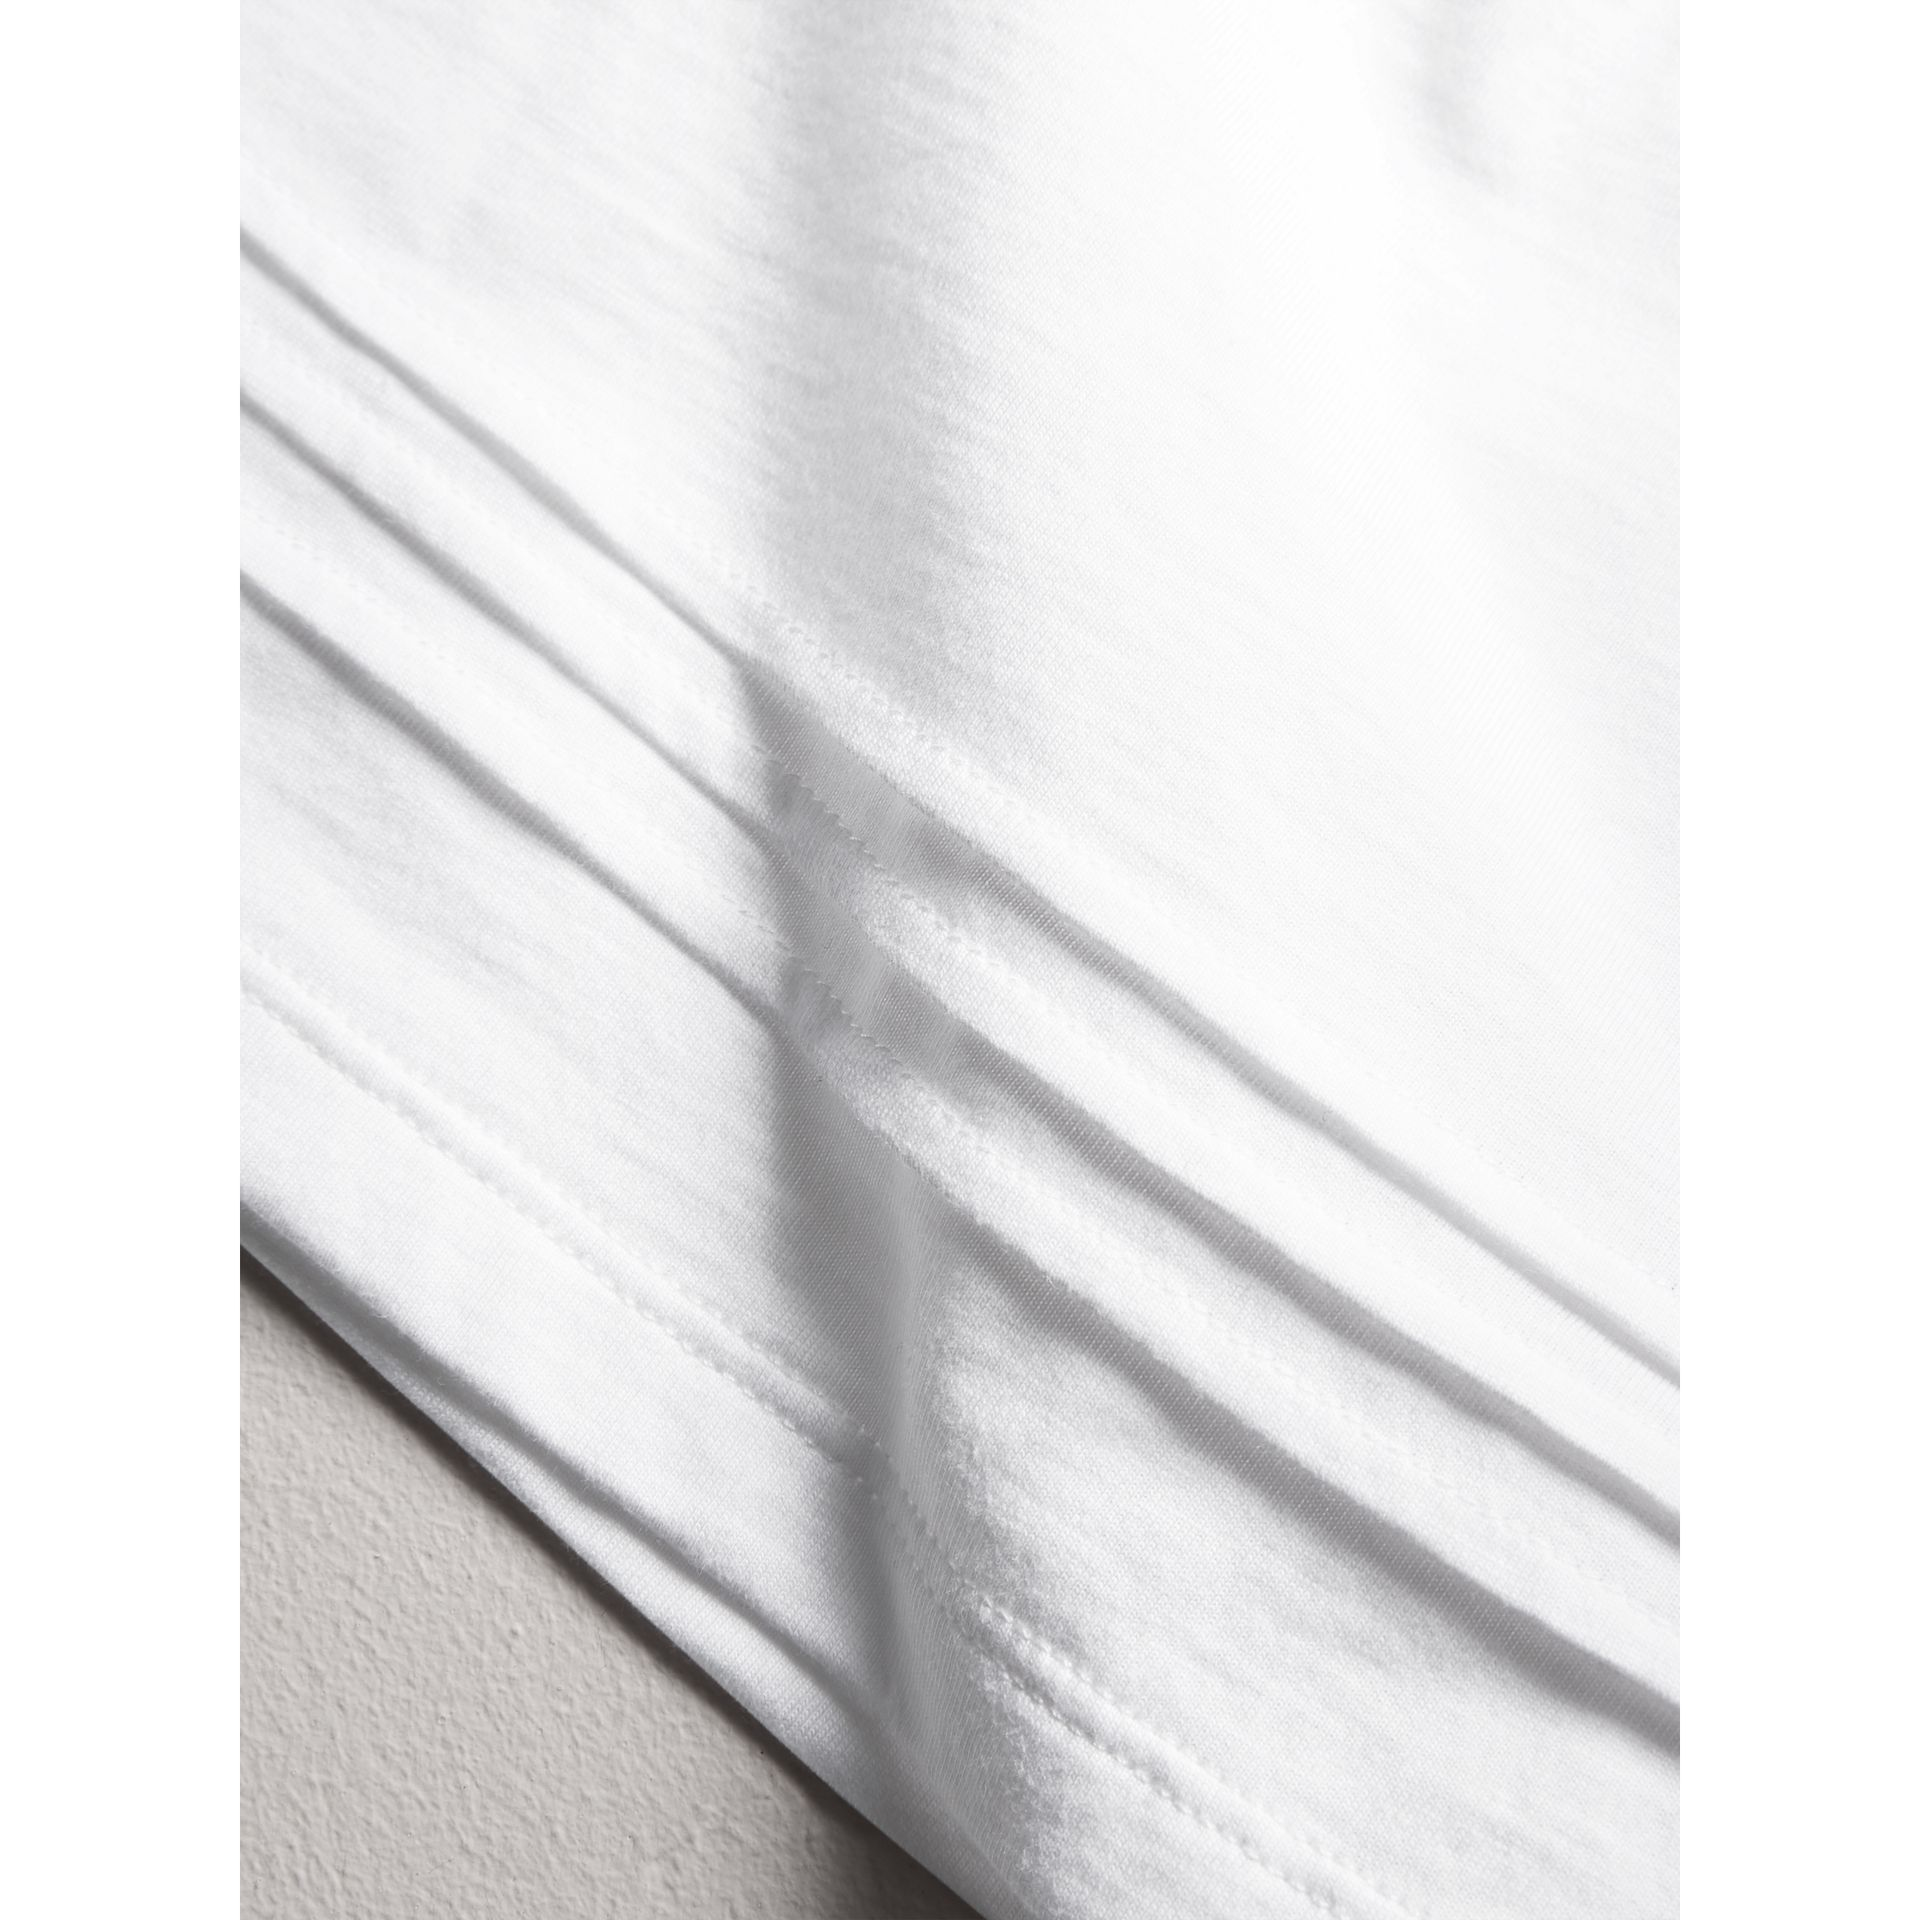 Pleat and Check Detail Cotton T-shirt in White | Burberry - gallery image 1